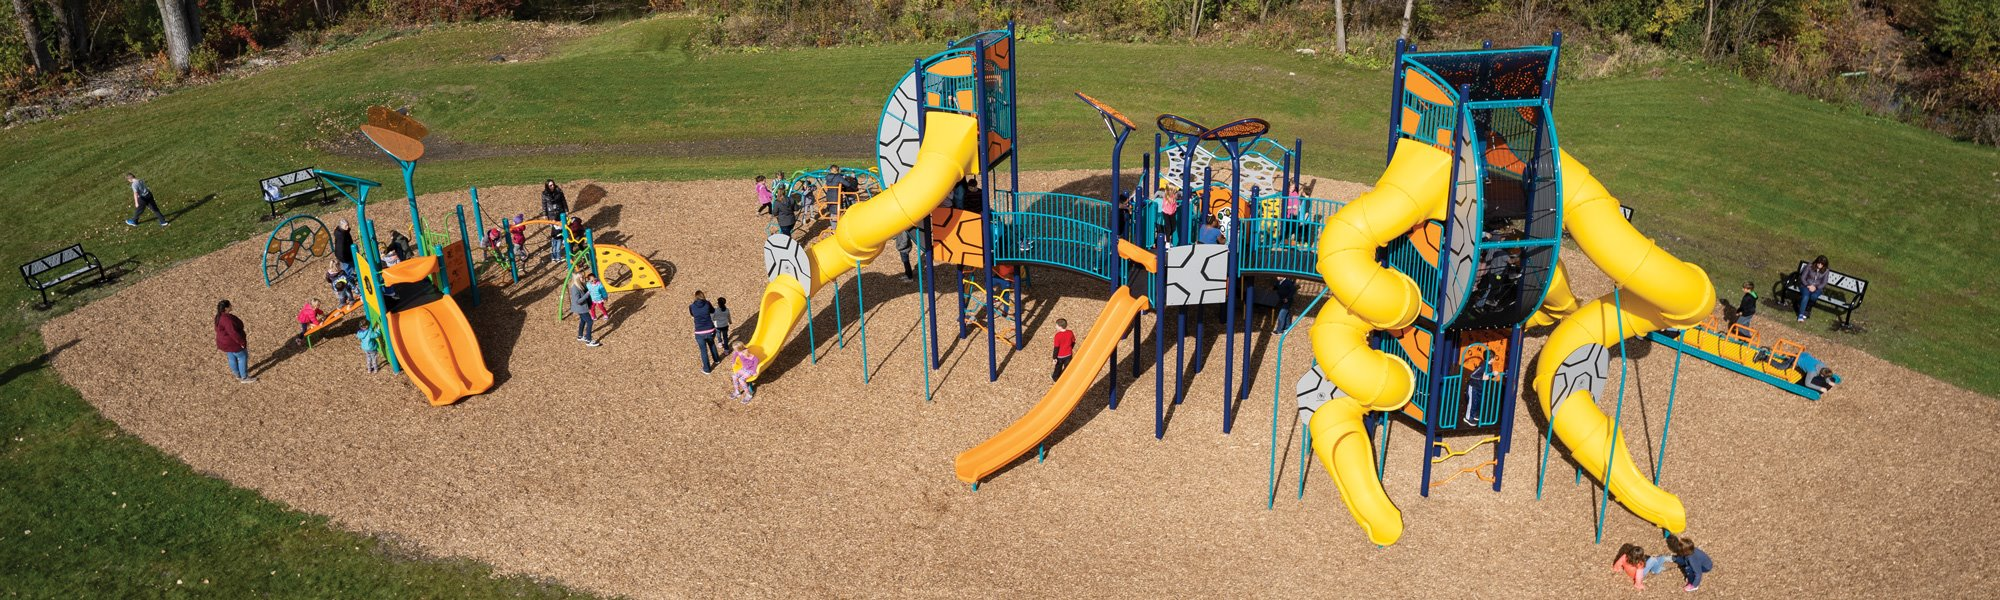 New Playground Products